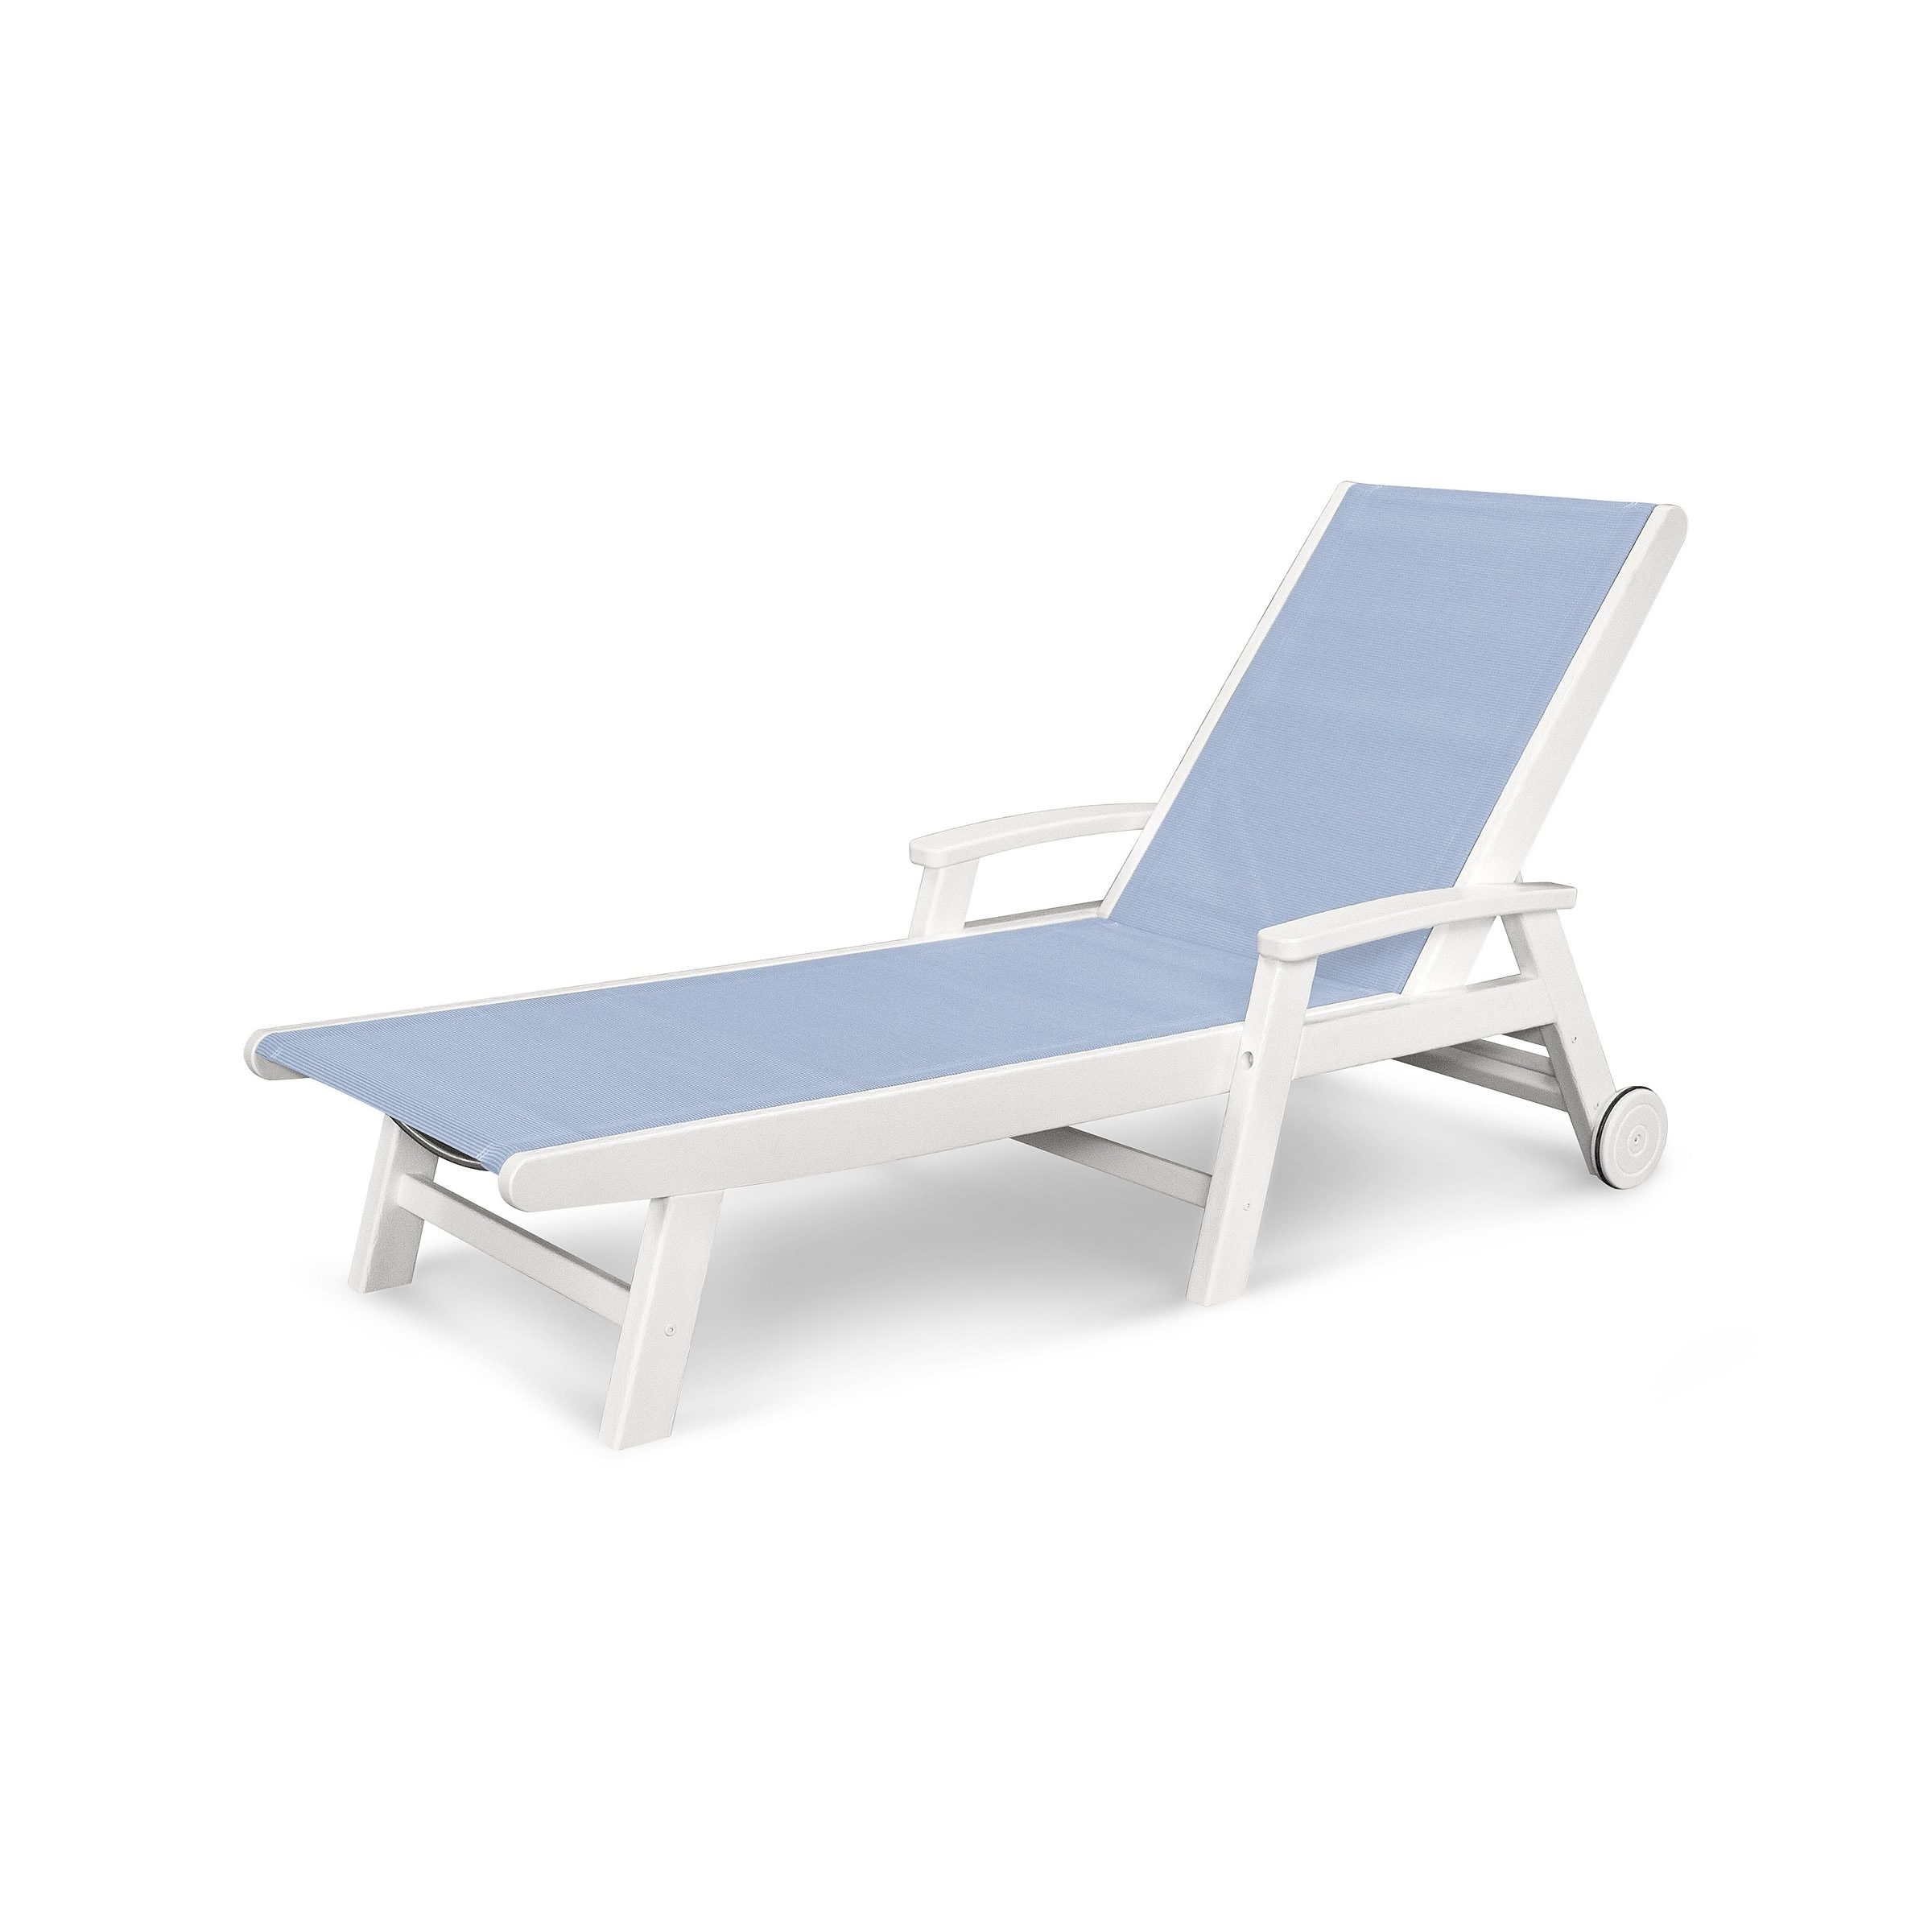 Most Recently Released Resin Chaise Lounges Regarding Resin Chaise Lounge Chairs • Lounge Chairs Ideas (View 6 of 15)